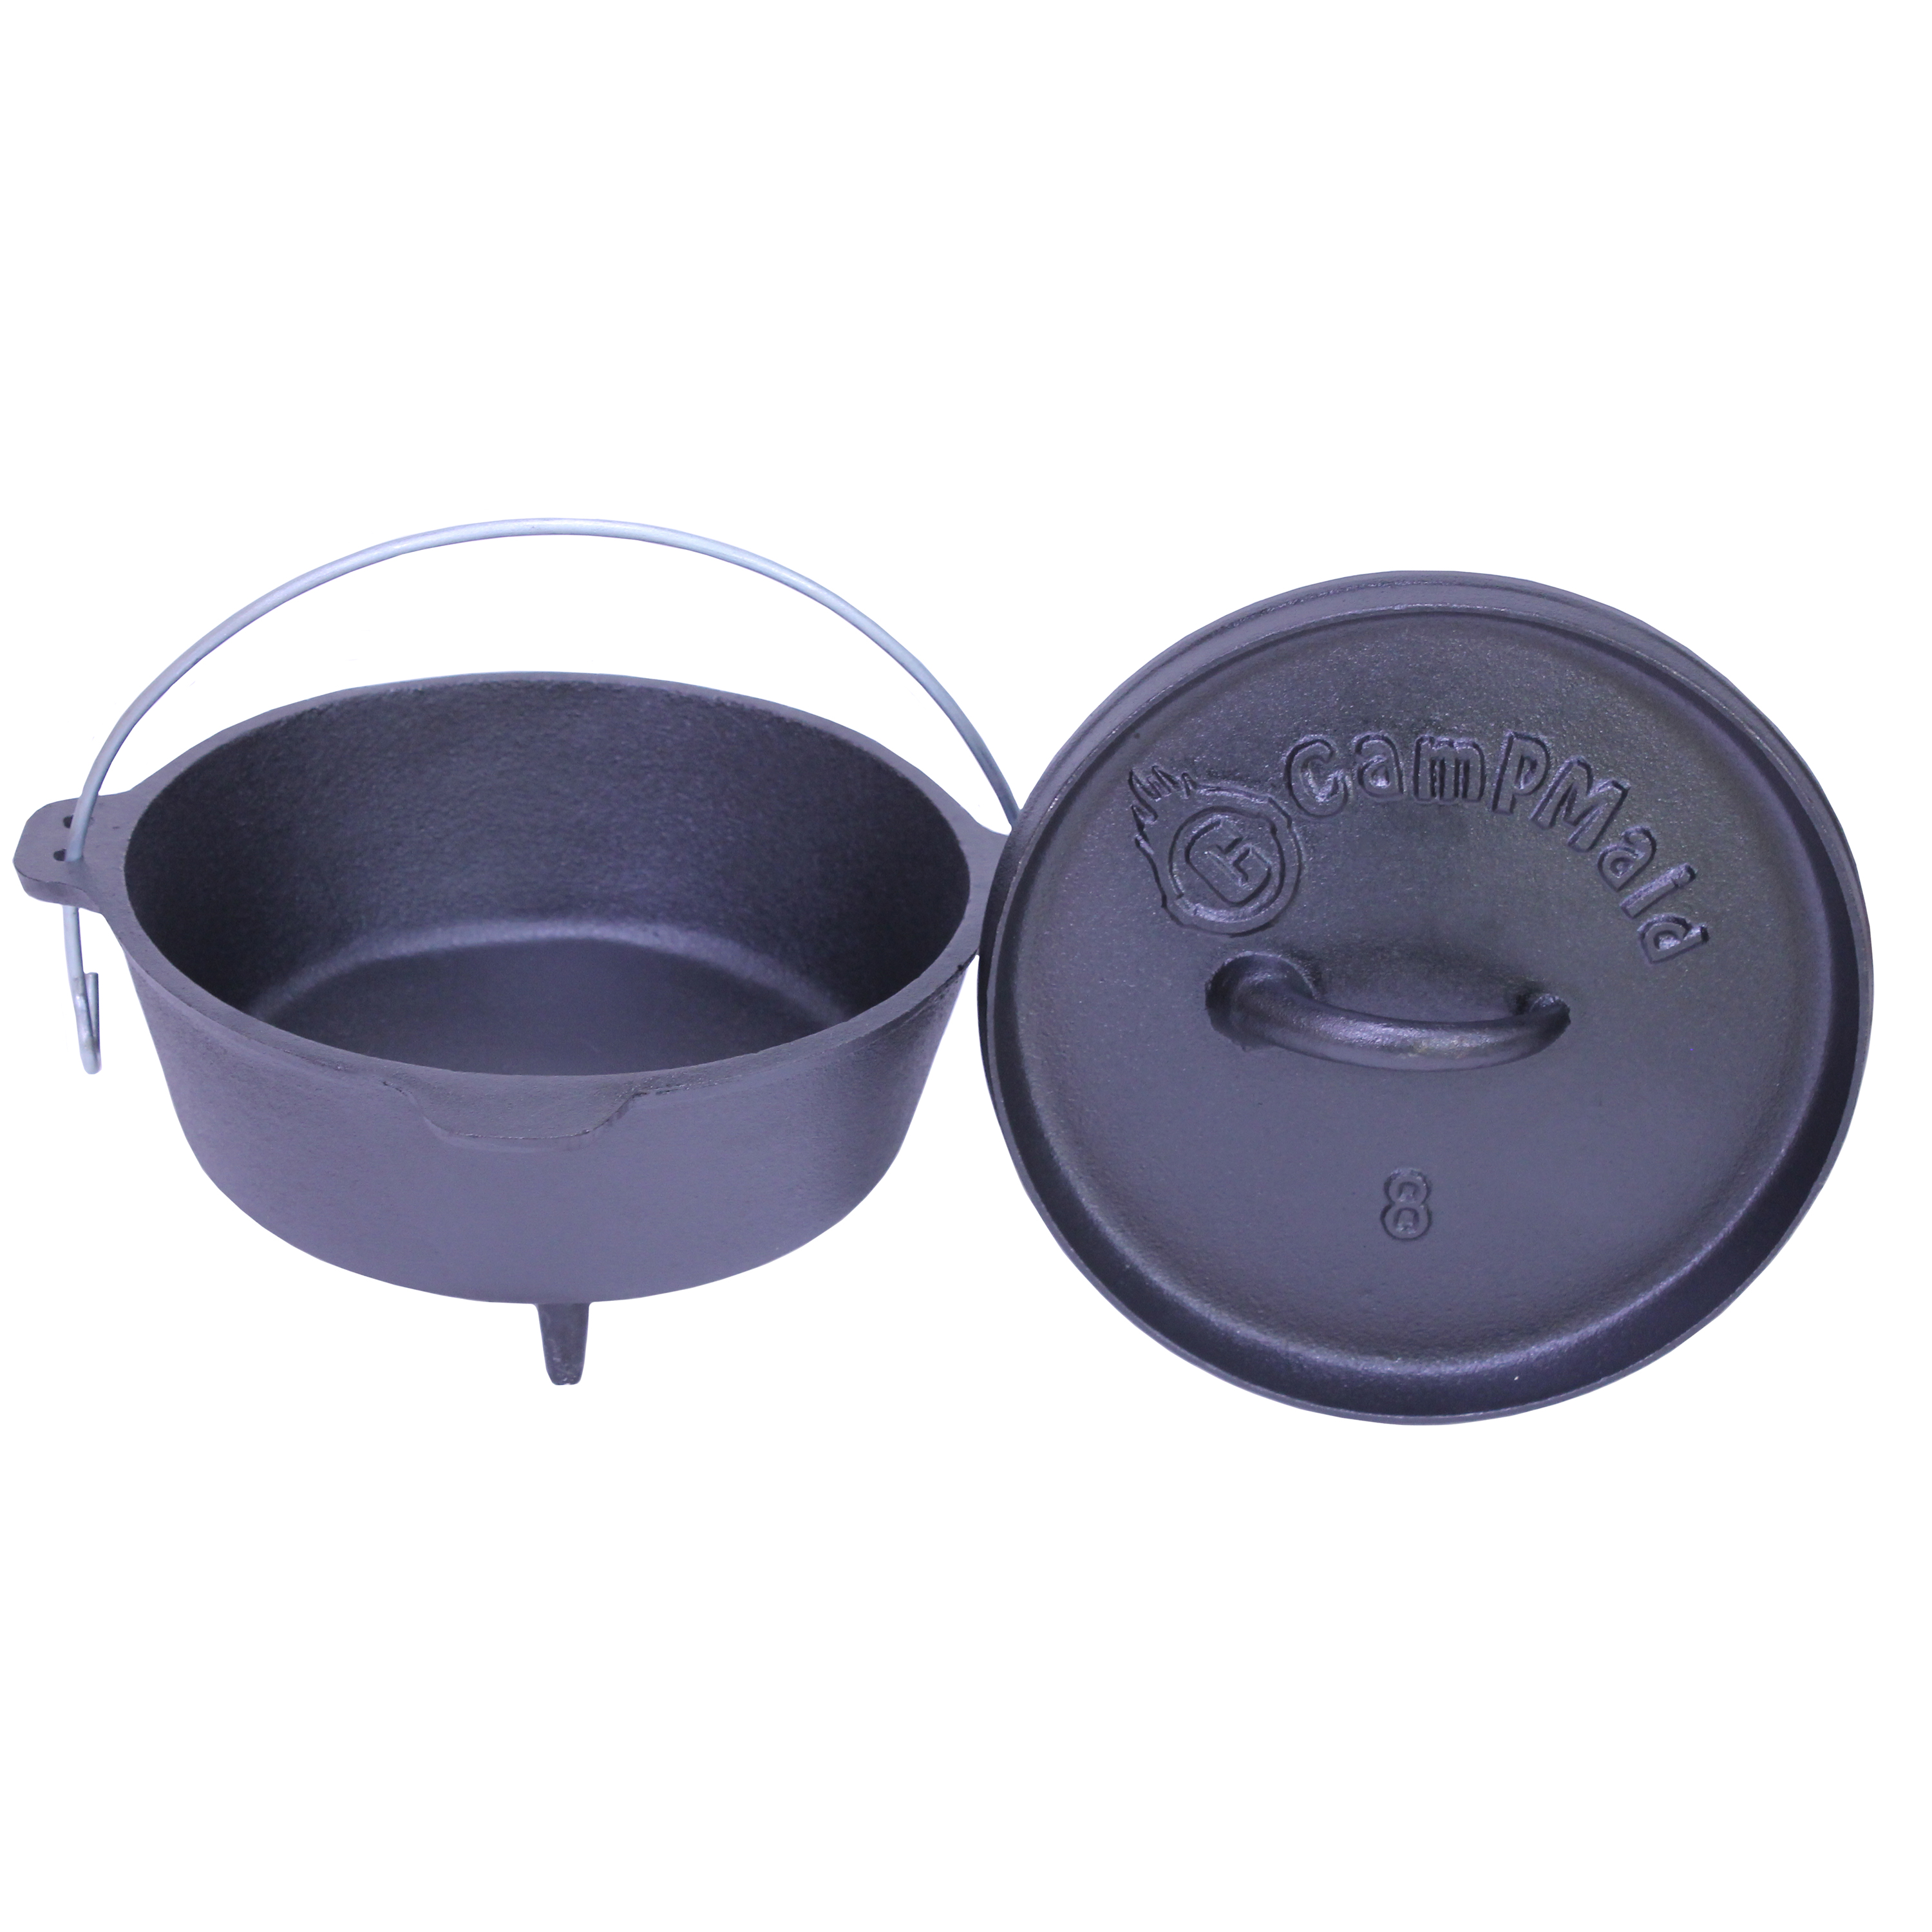 """8"""" Dutch Oven by Campmaid"""